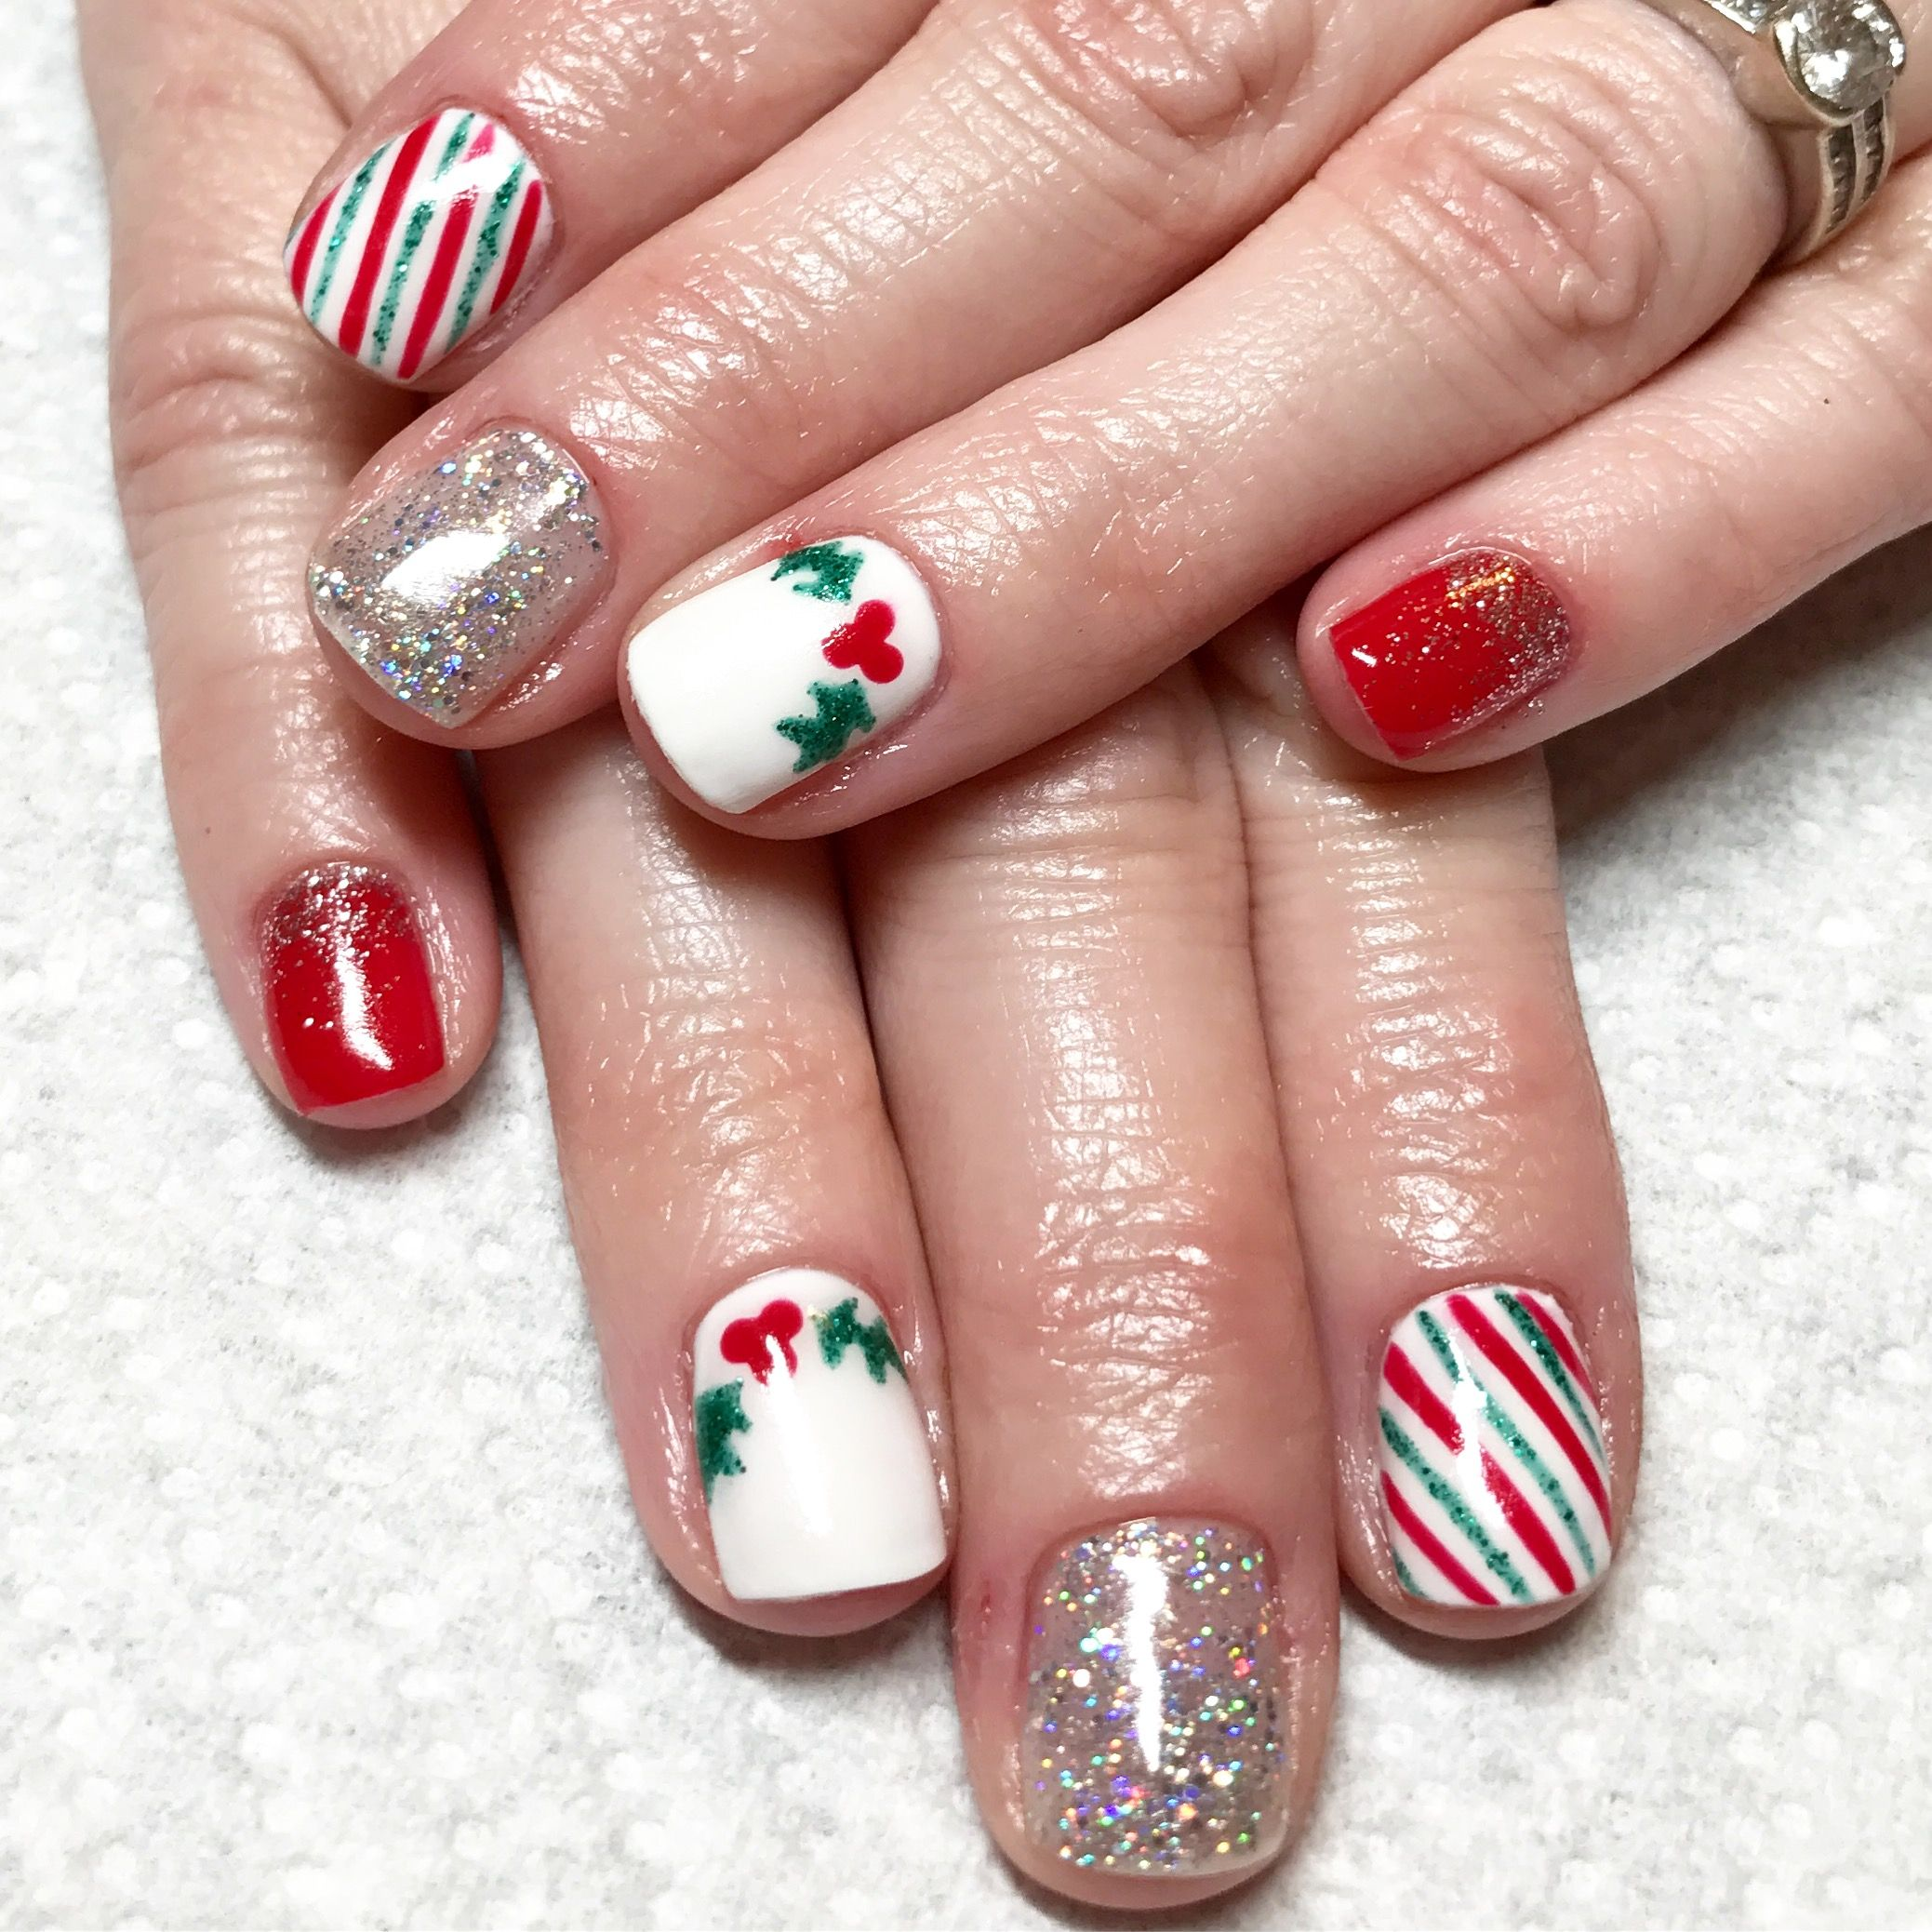 Christmas gel nails. Holly berry nails | Nails I\'ve done | Pinterest